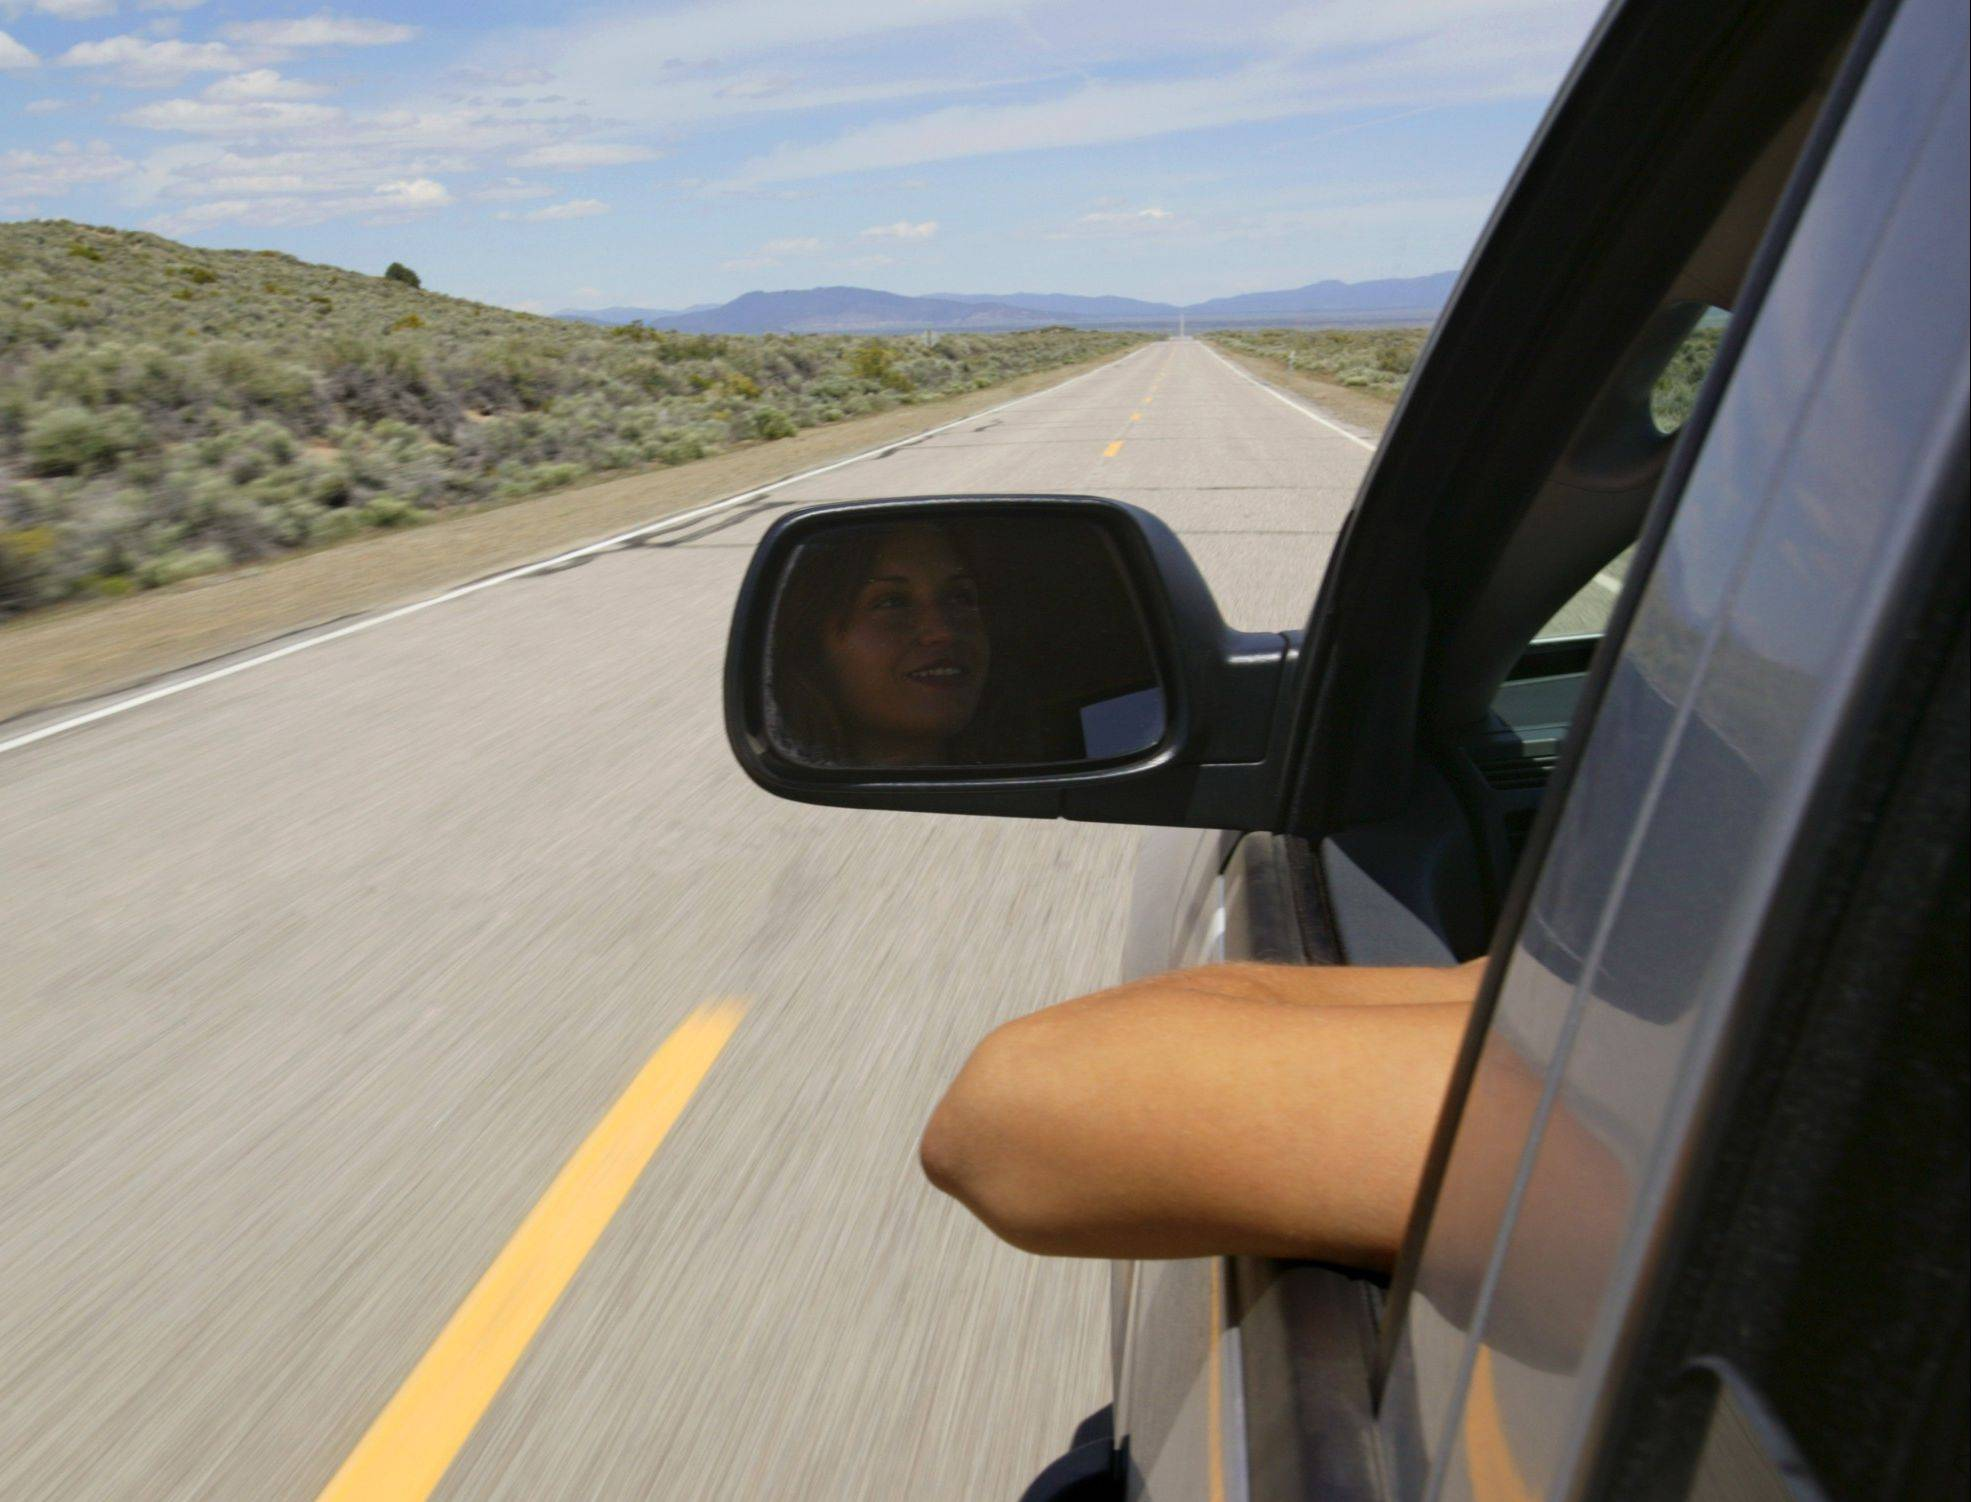 Sun exposure can add up for drivers who have long commutes. Combat the left-arm tan by wearing sunscreen every day.